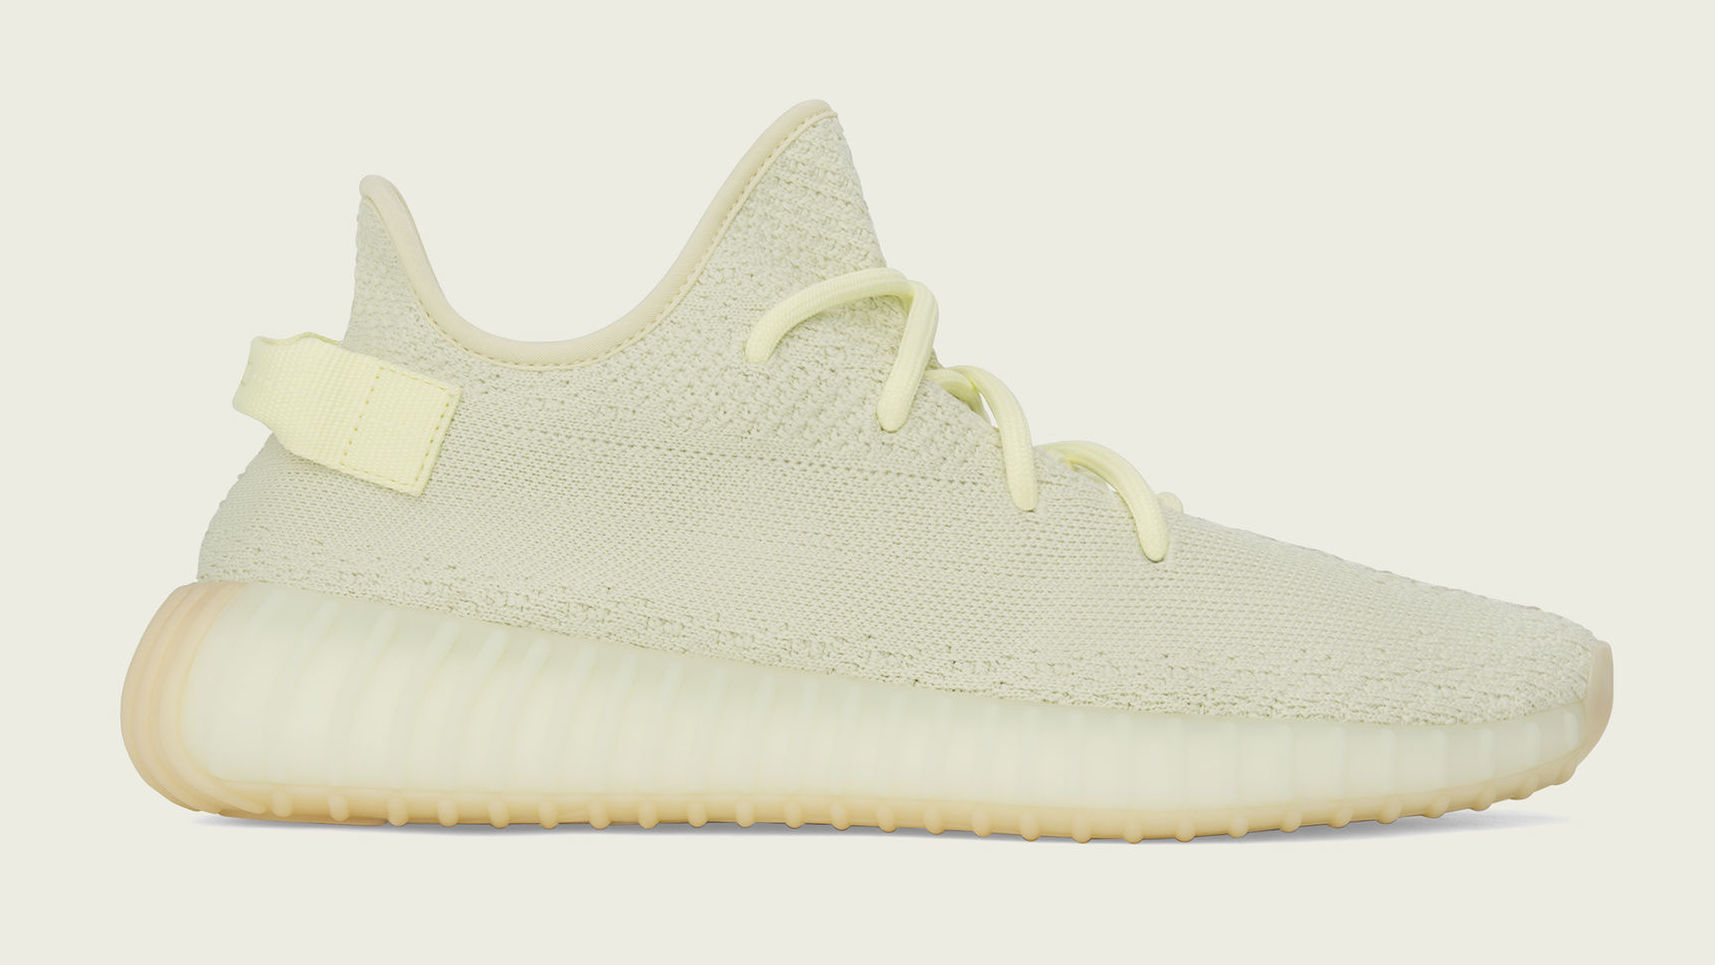 watch 62580 669dd Adidas Yeezy Boost 350 V 2 Butter Release Date F36980   Sole Collector